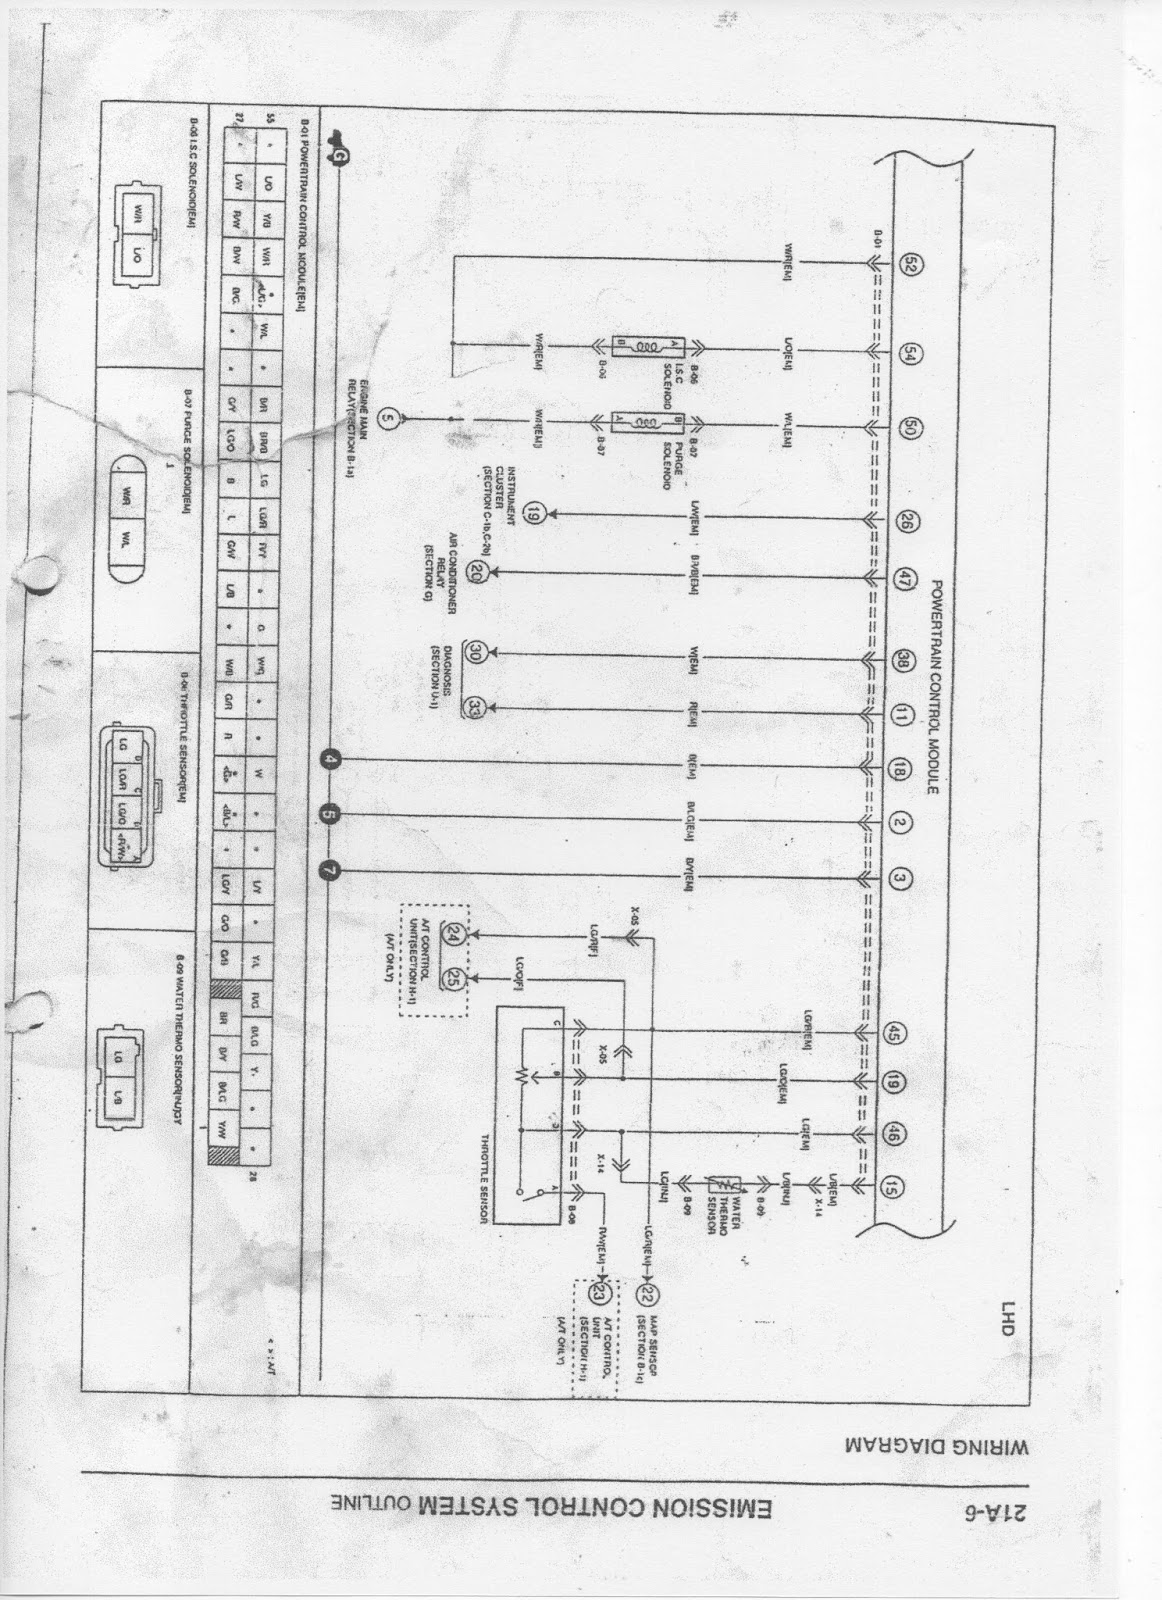 Daihatsu Delta Truck Wiring Diagram Library 1966 Cadillac Taft Diy Diagrams U2022 Wye For